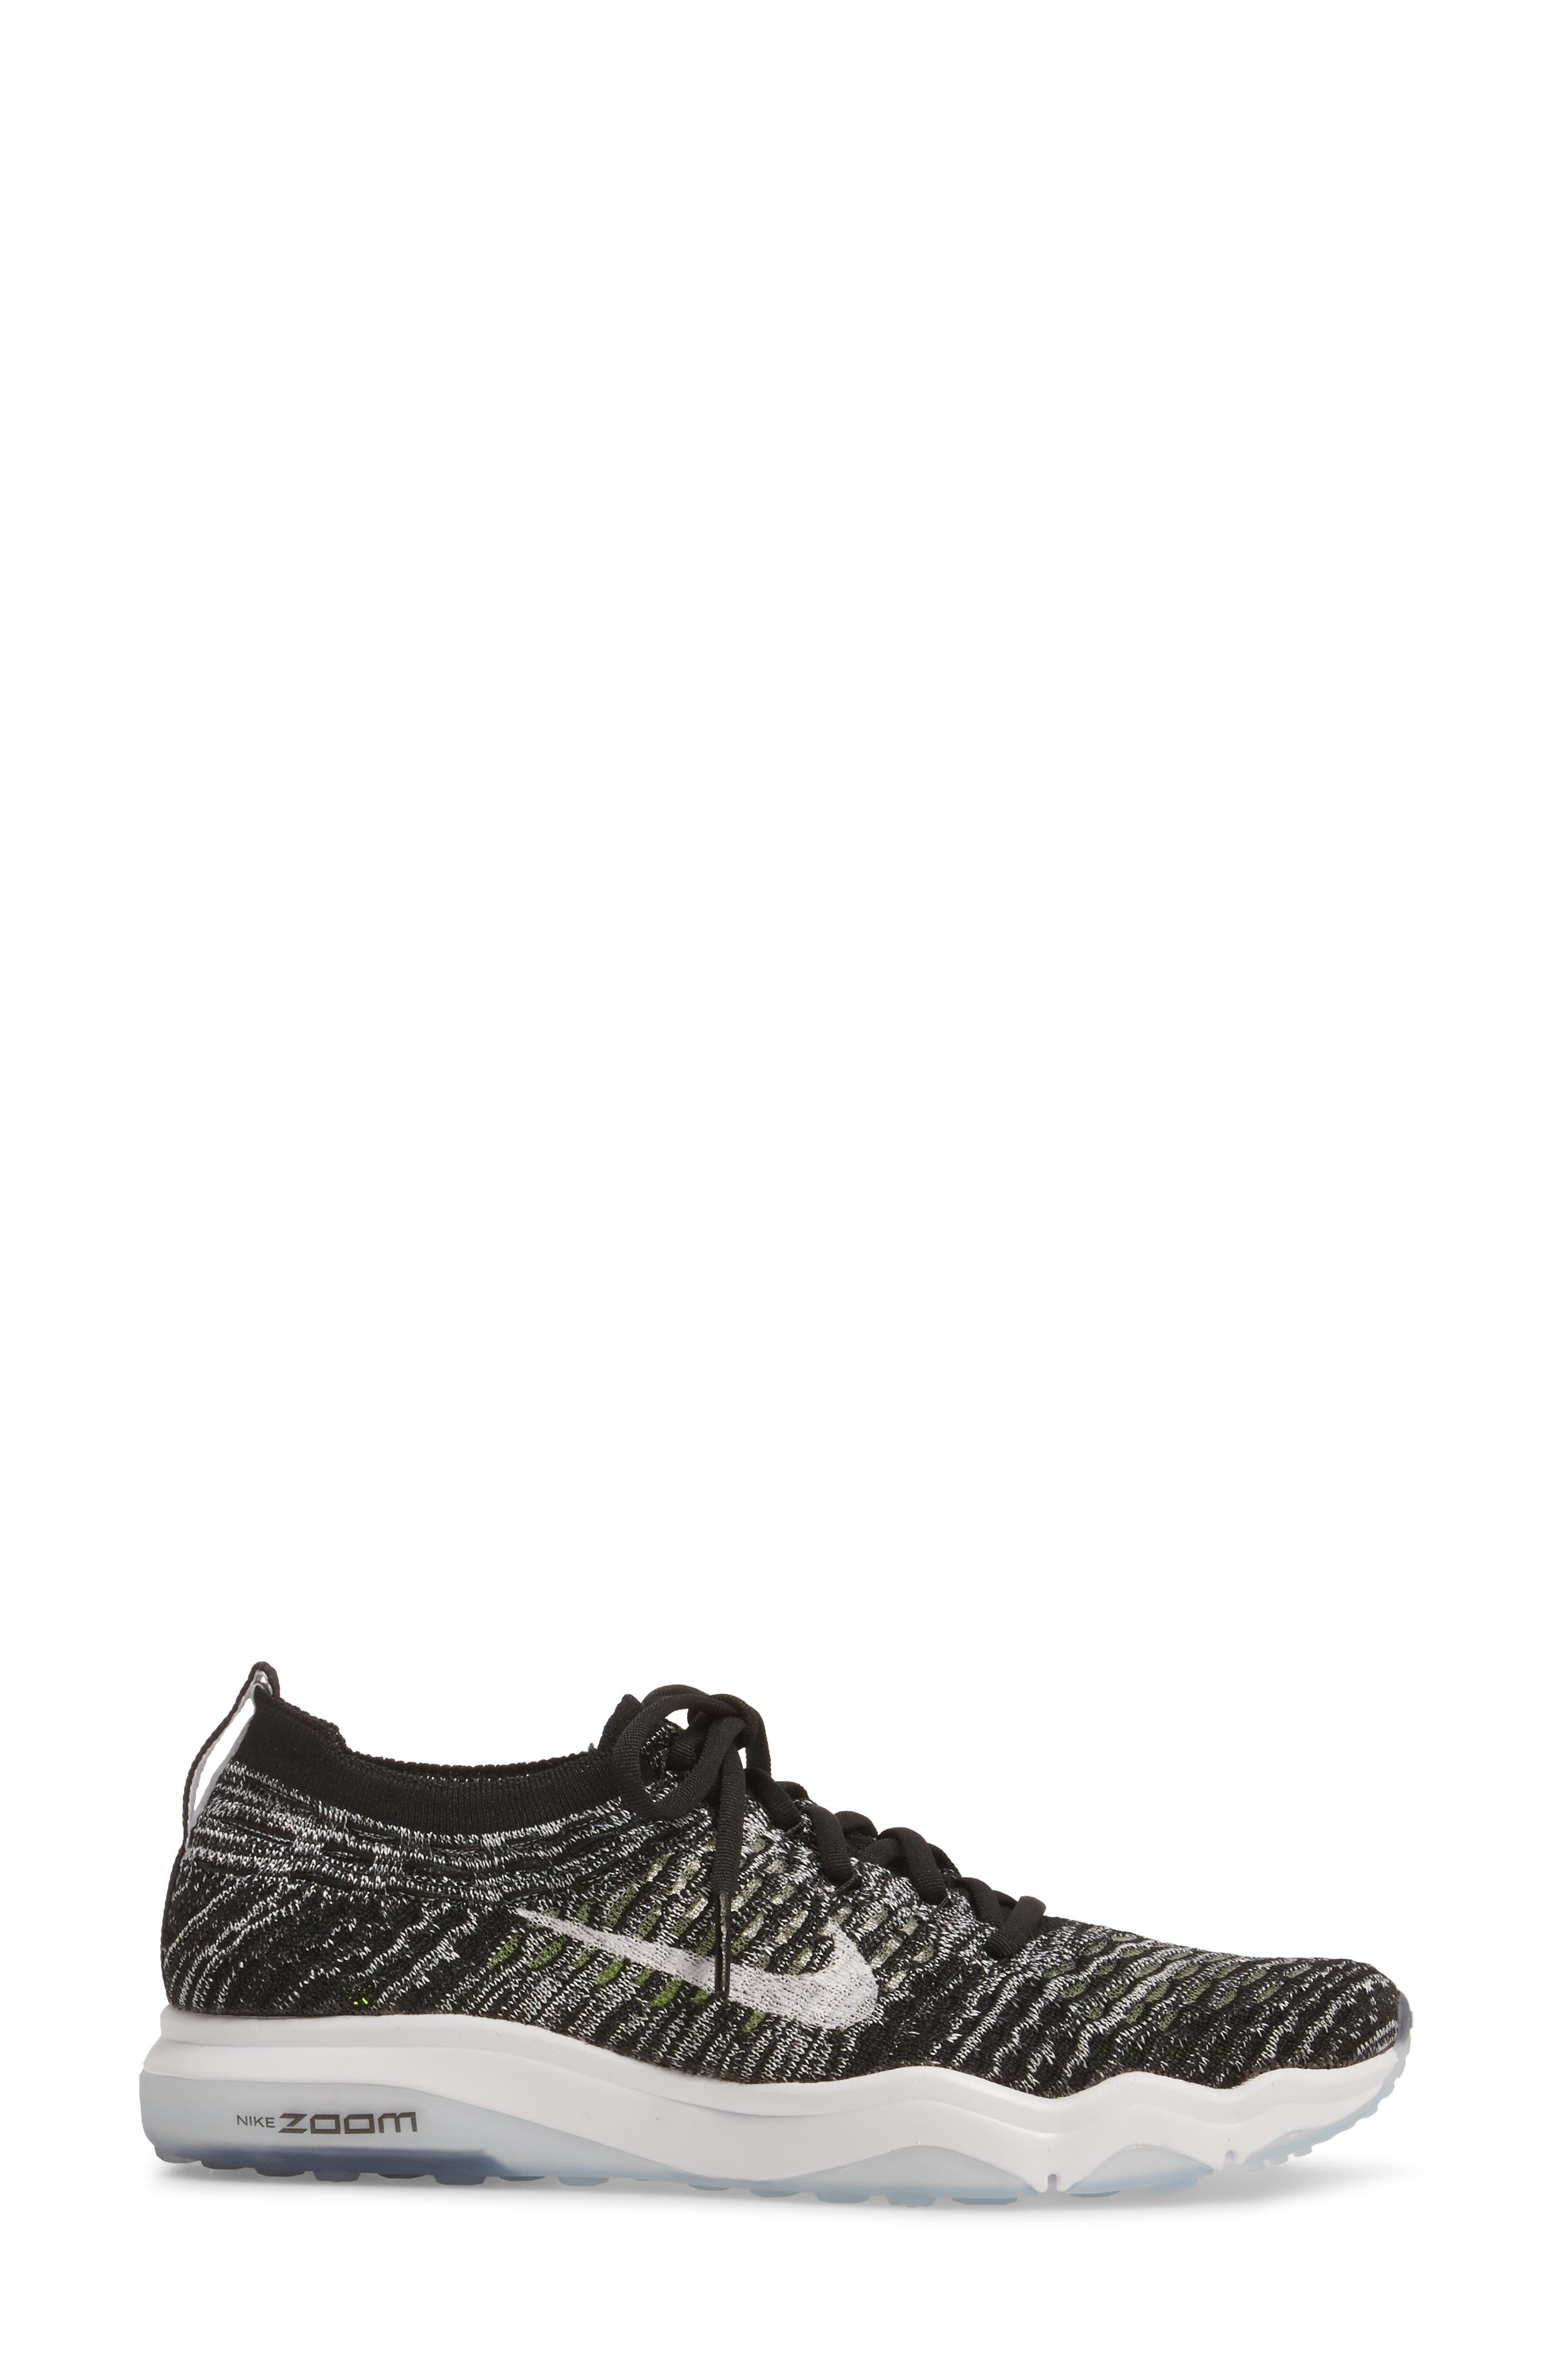 Air Zoom Fearless Flyknit Training Shoe,                             Alternate thumbnail 3, color,                             Black/ White/ White